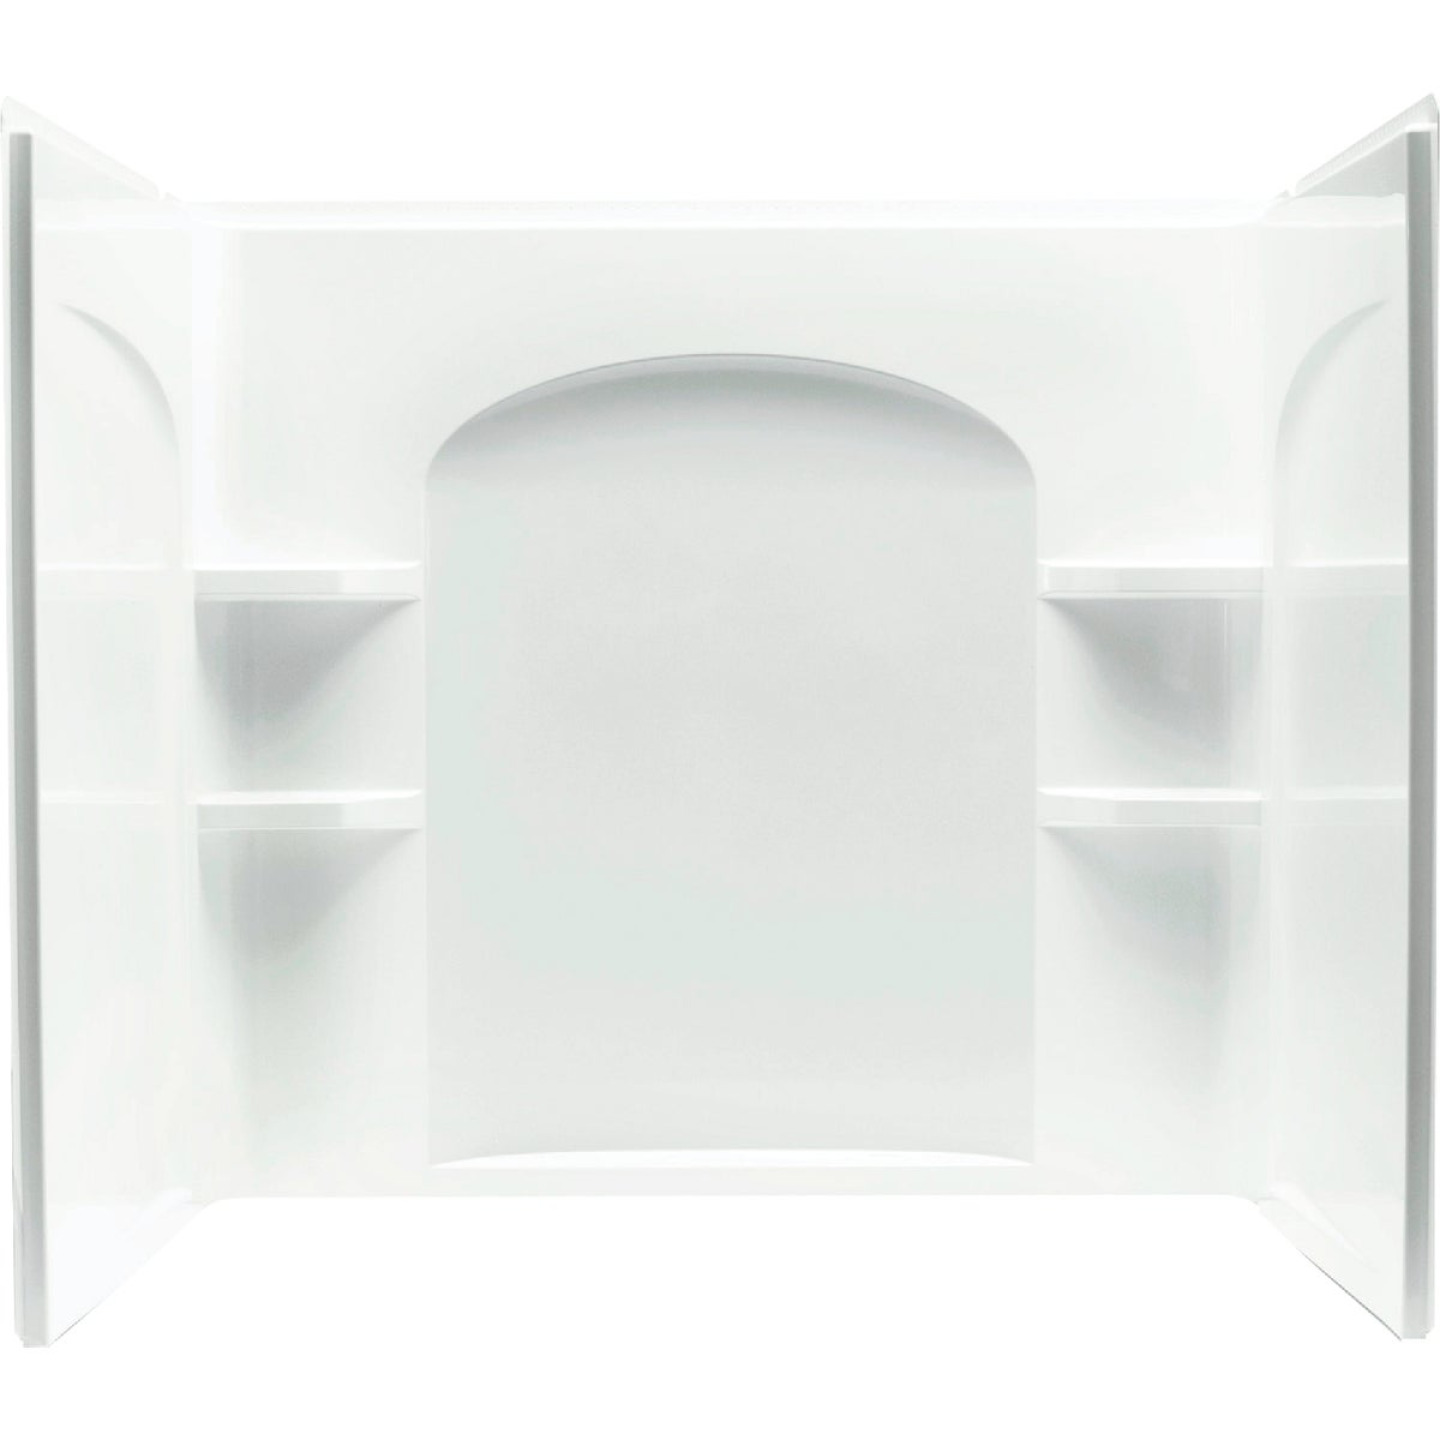 Sterling Ensemble 7122 Series 3-Piece 60 In. W x 33-1/4 In. D x 55-1/4 In. H Tub Wall Kit in White Image 2